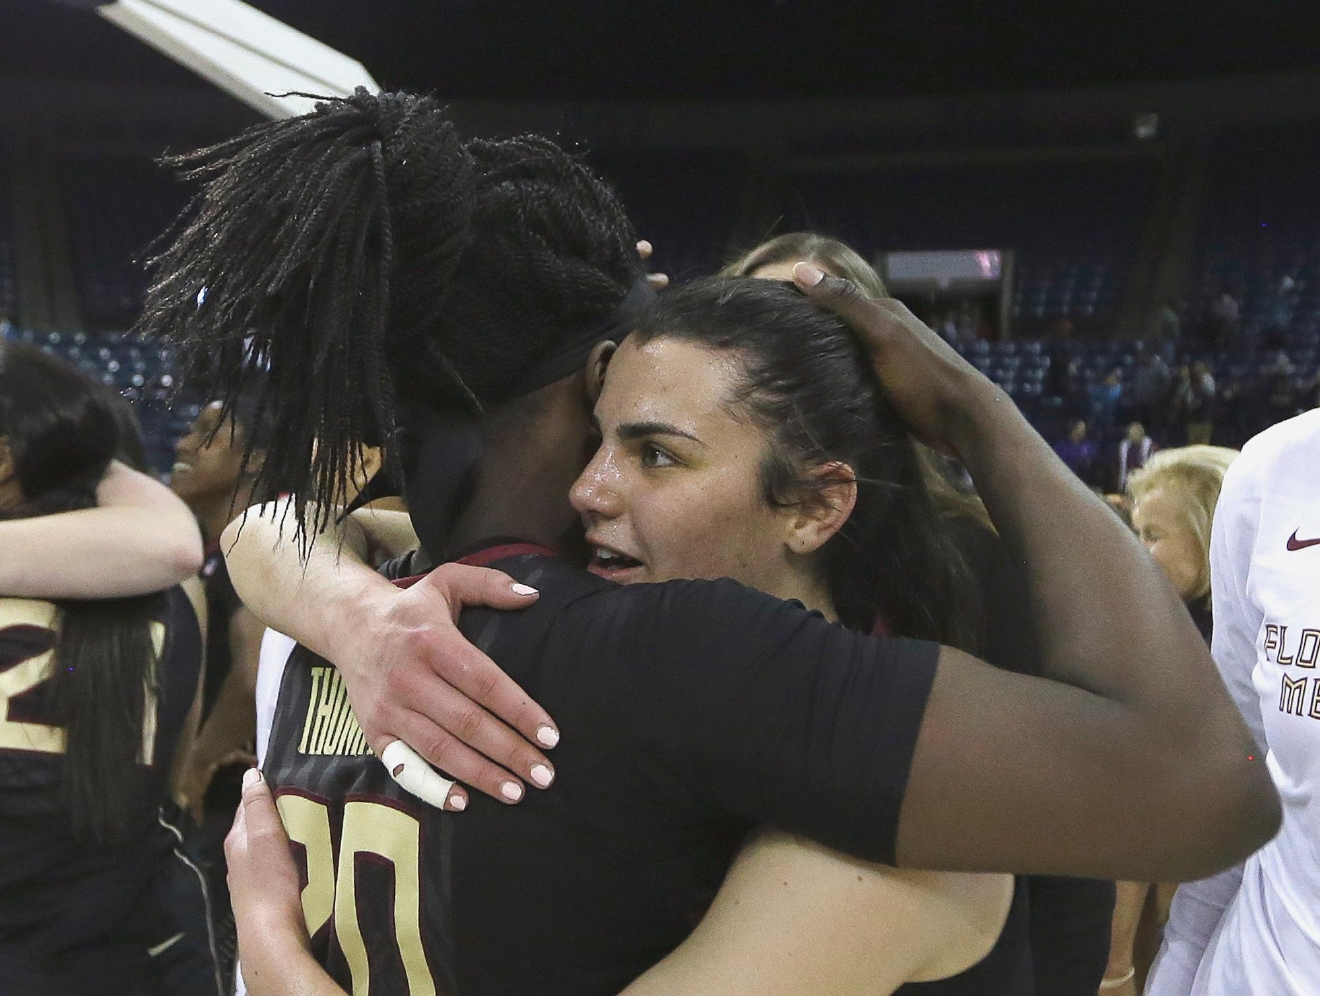 Florida State guard Leticia Romero, right, hugs teammate Shakayla Thomas after beating Oregon State 66-53 in a regional semi-final round game of an NCAA college basketball tournament, Saturday, March 25, 2017, in Stockton, Calif. (AP Photo/Rich Pedroncelli)